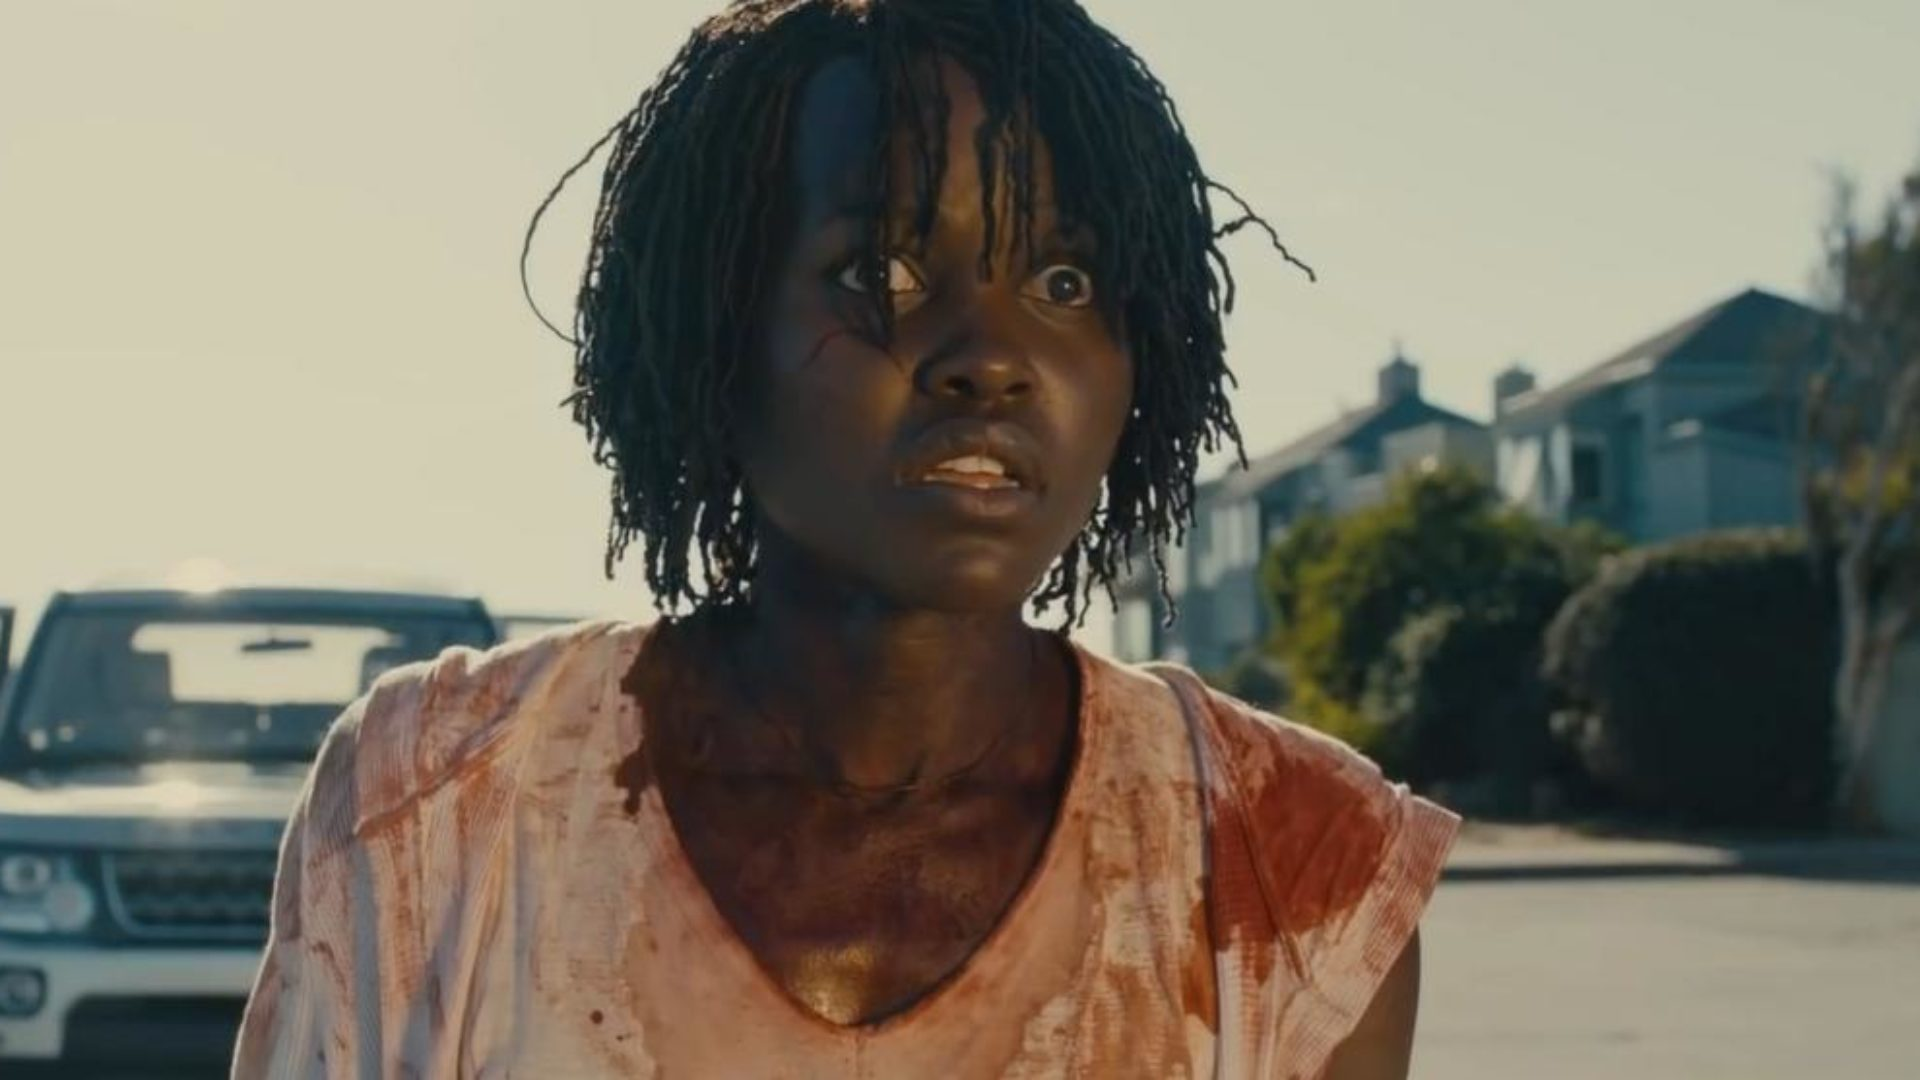 Jordan Peele Makes History With 'Us' At The Box Office